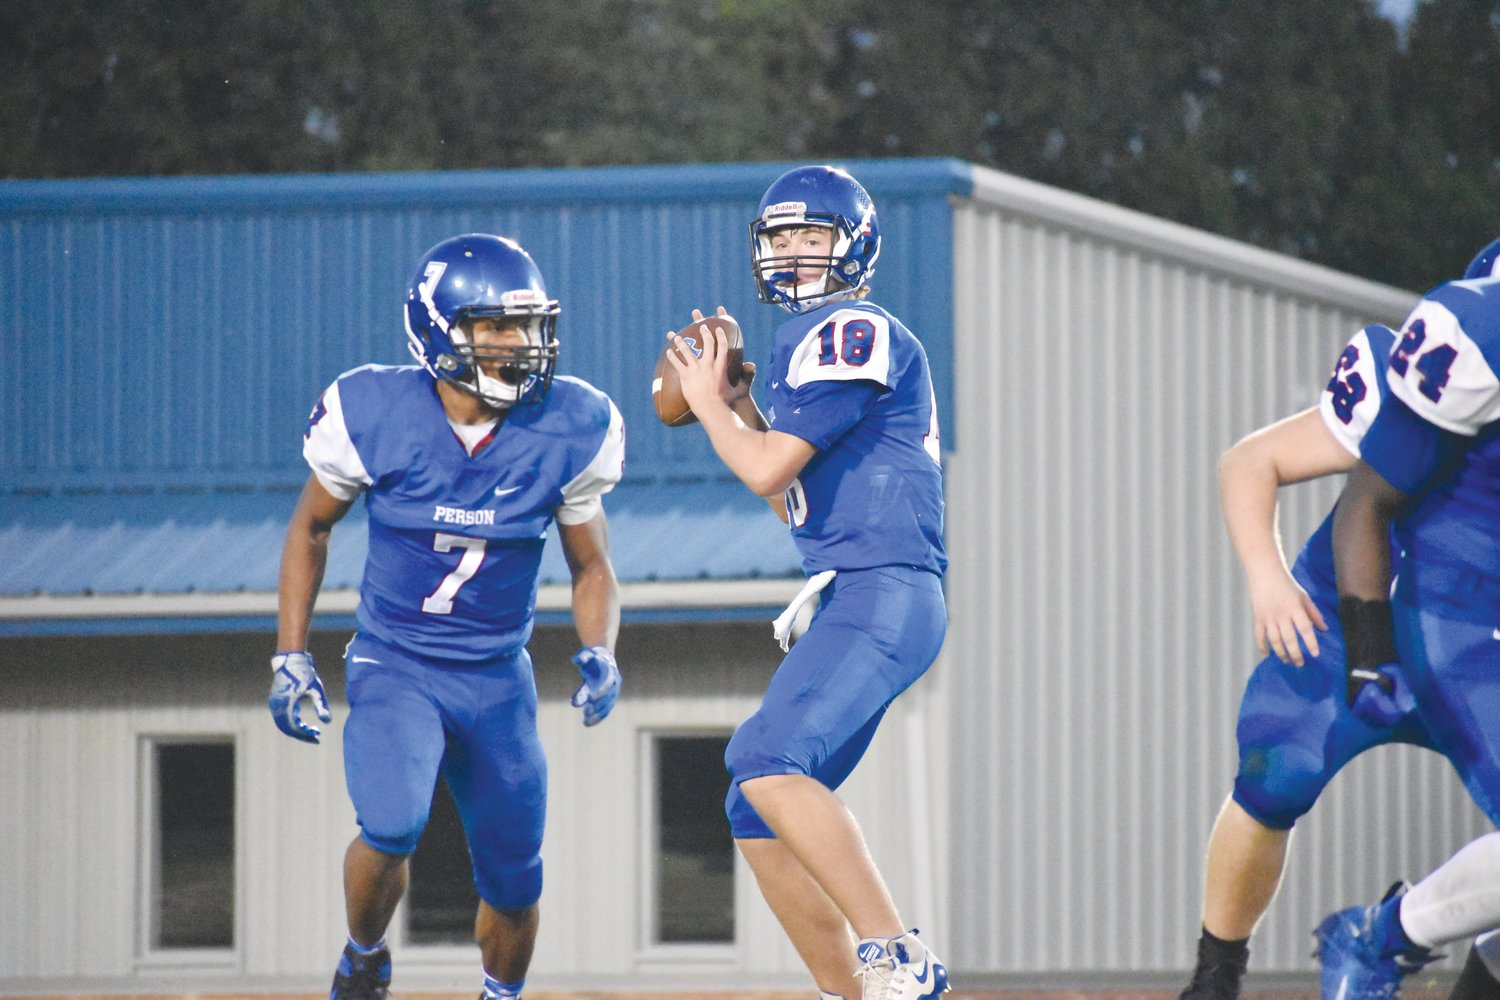 Ridge Clayton looks downfield as he sets up to pass in Friday night's game against Riverside.